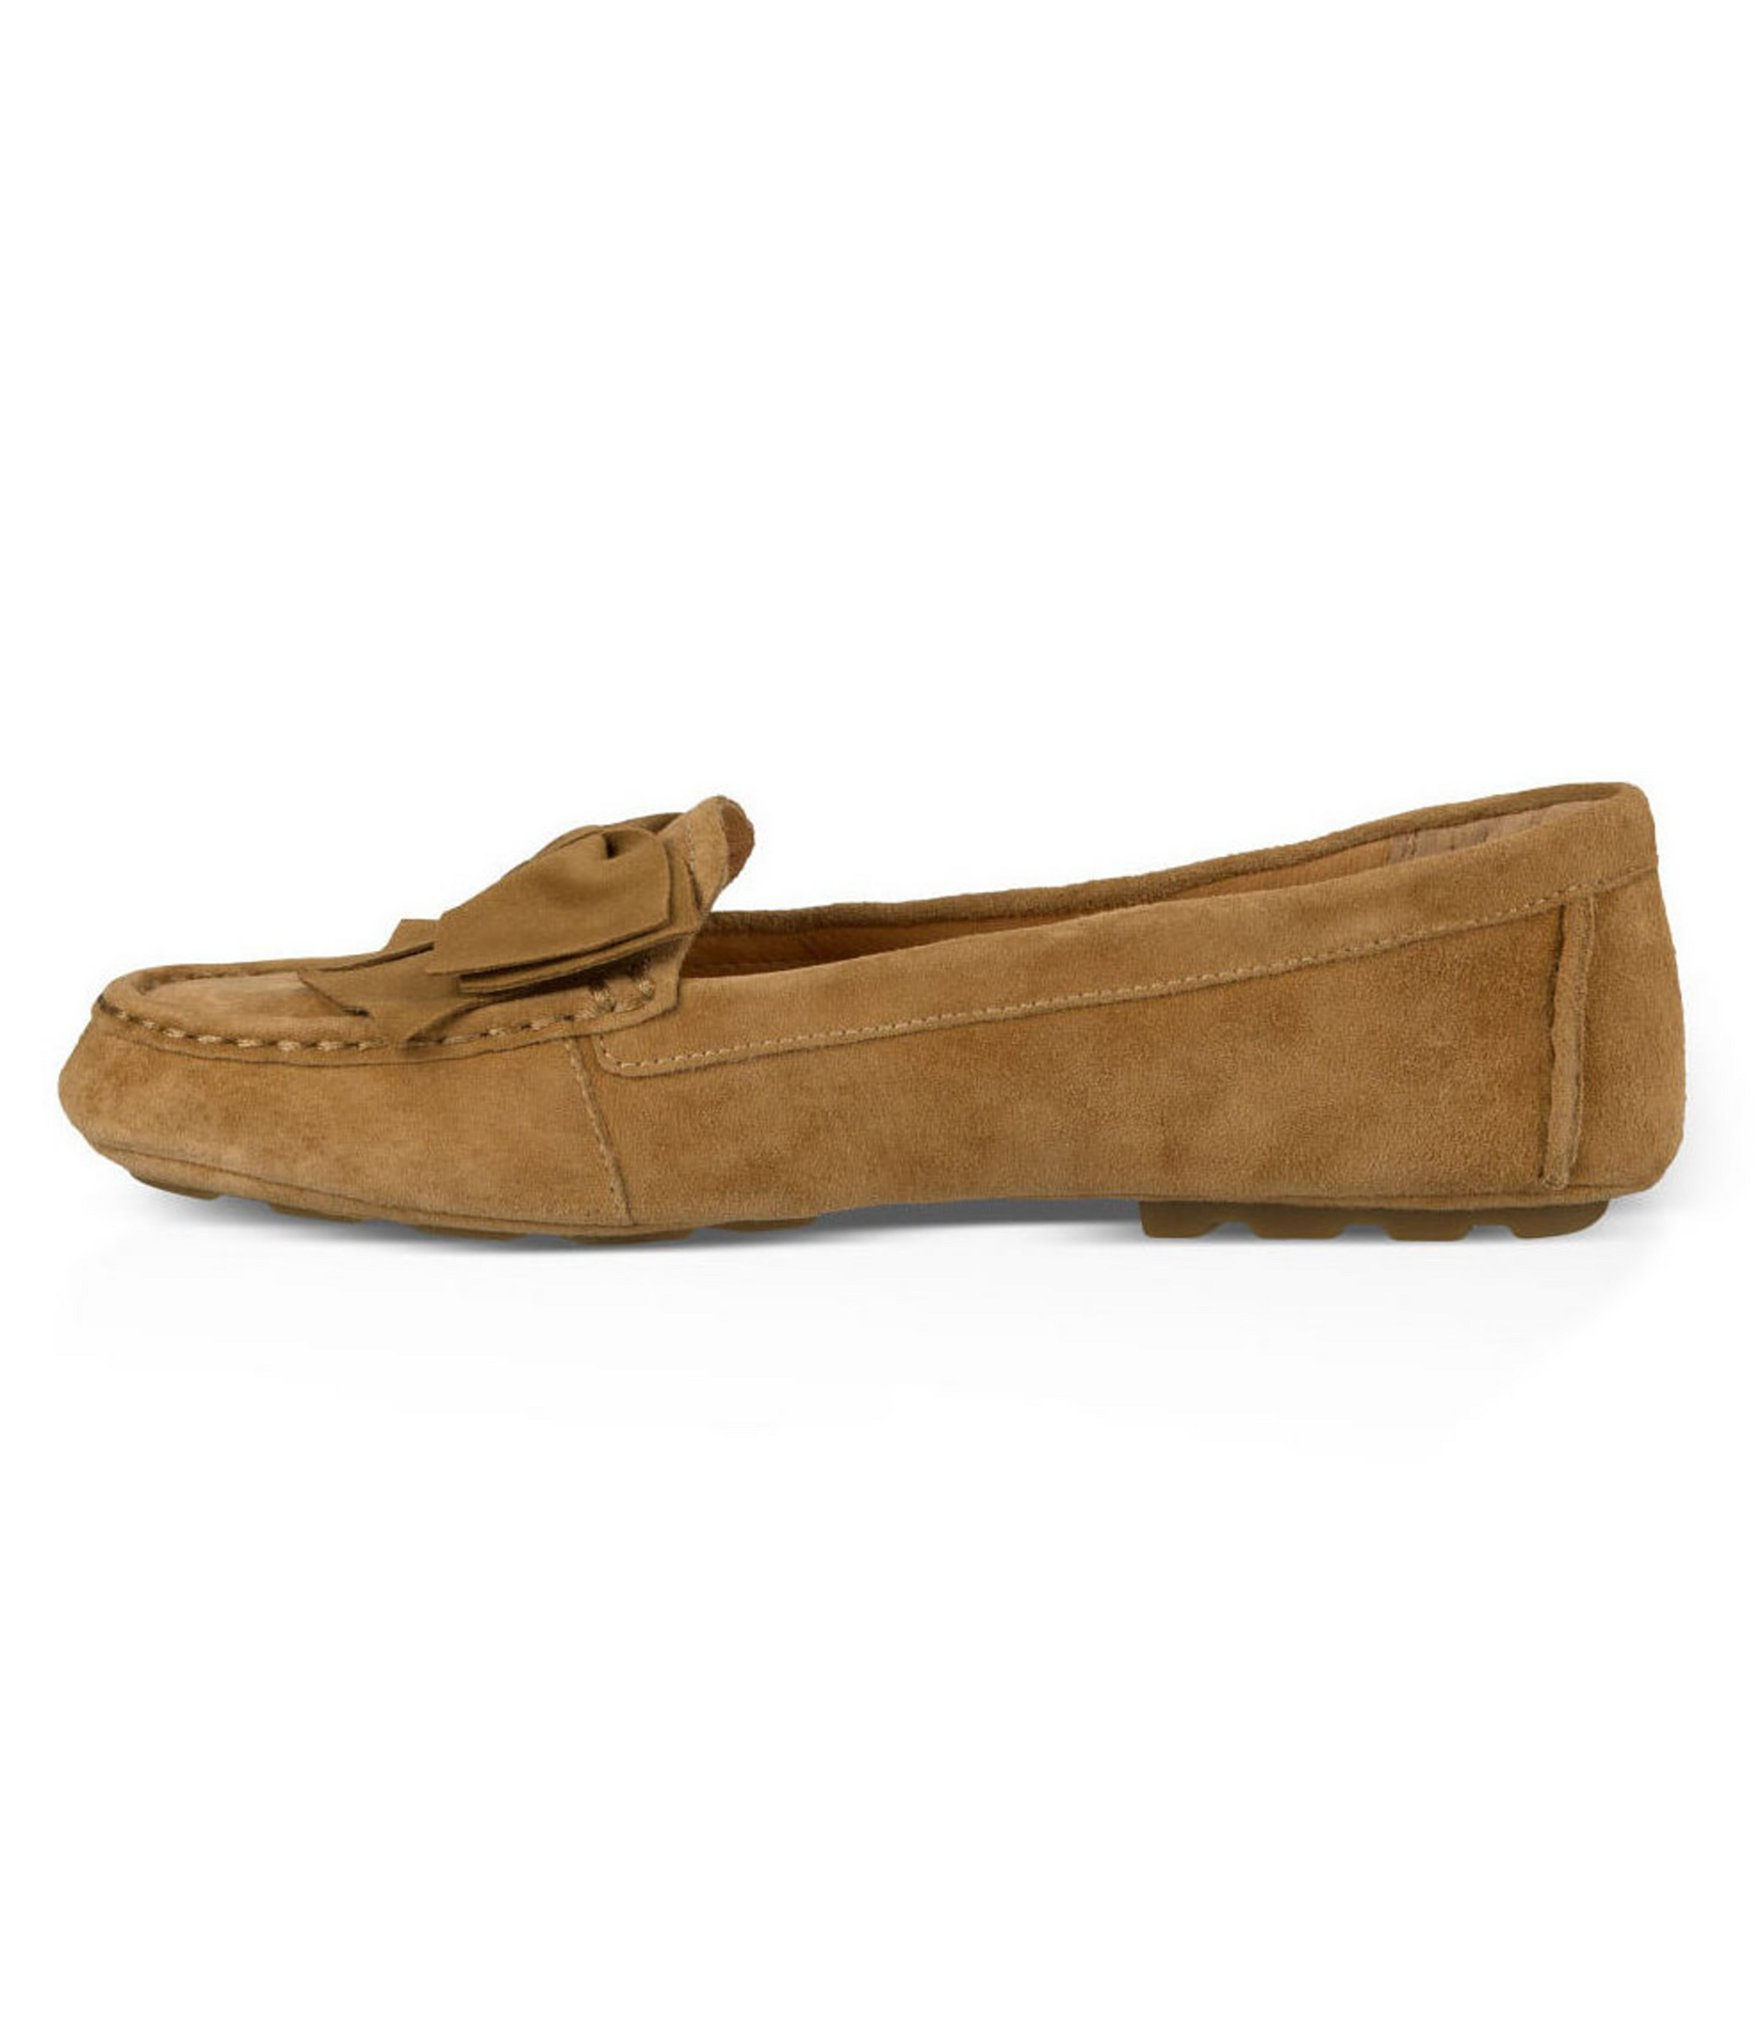 cd74eddfb38 Ugg Slipper Loafers - cheap watches mgc-gas.com